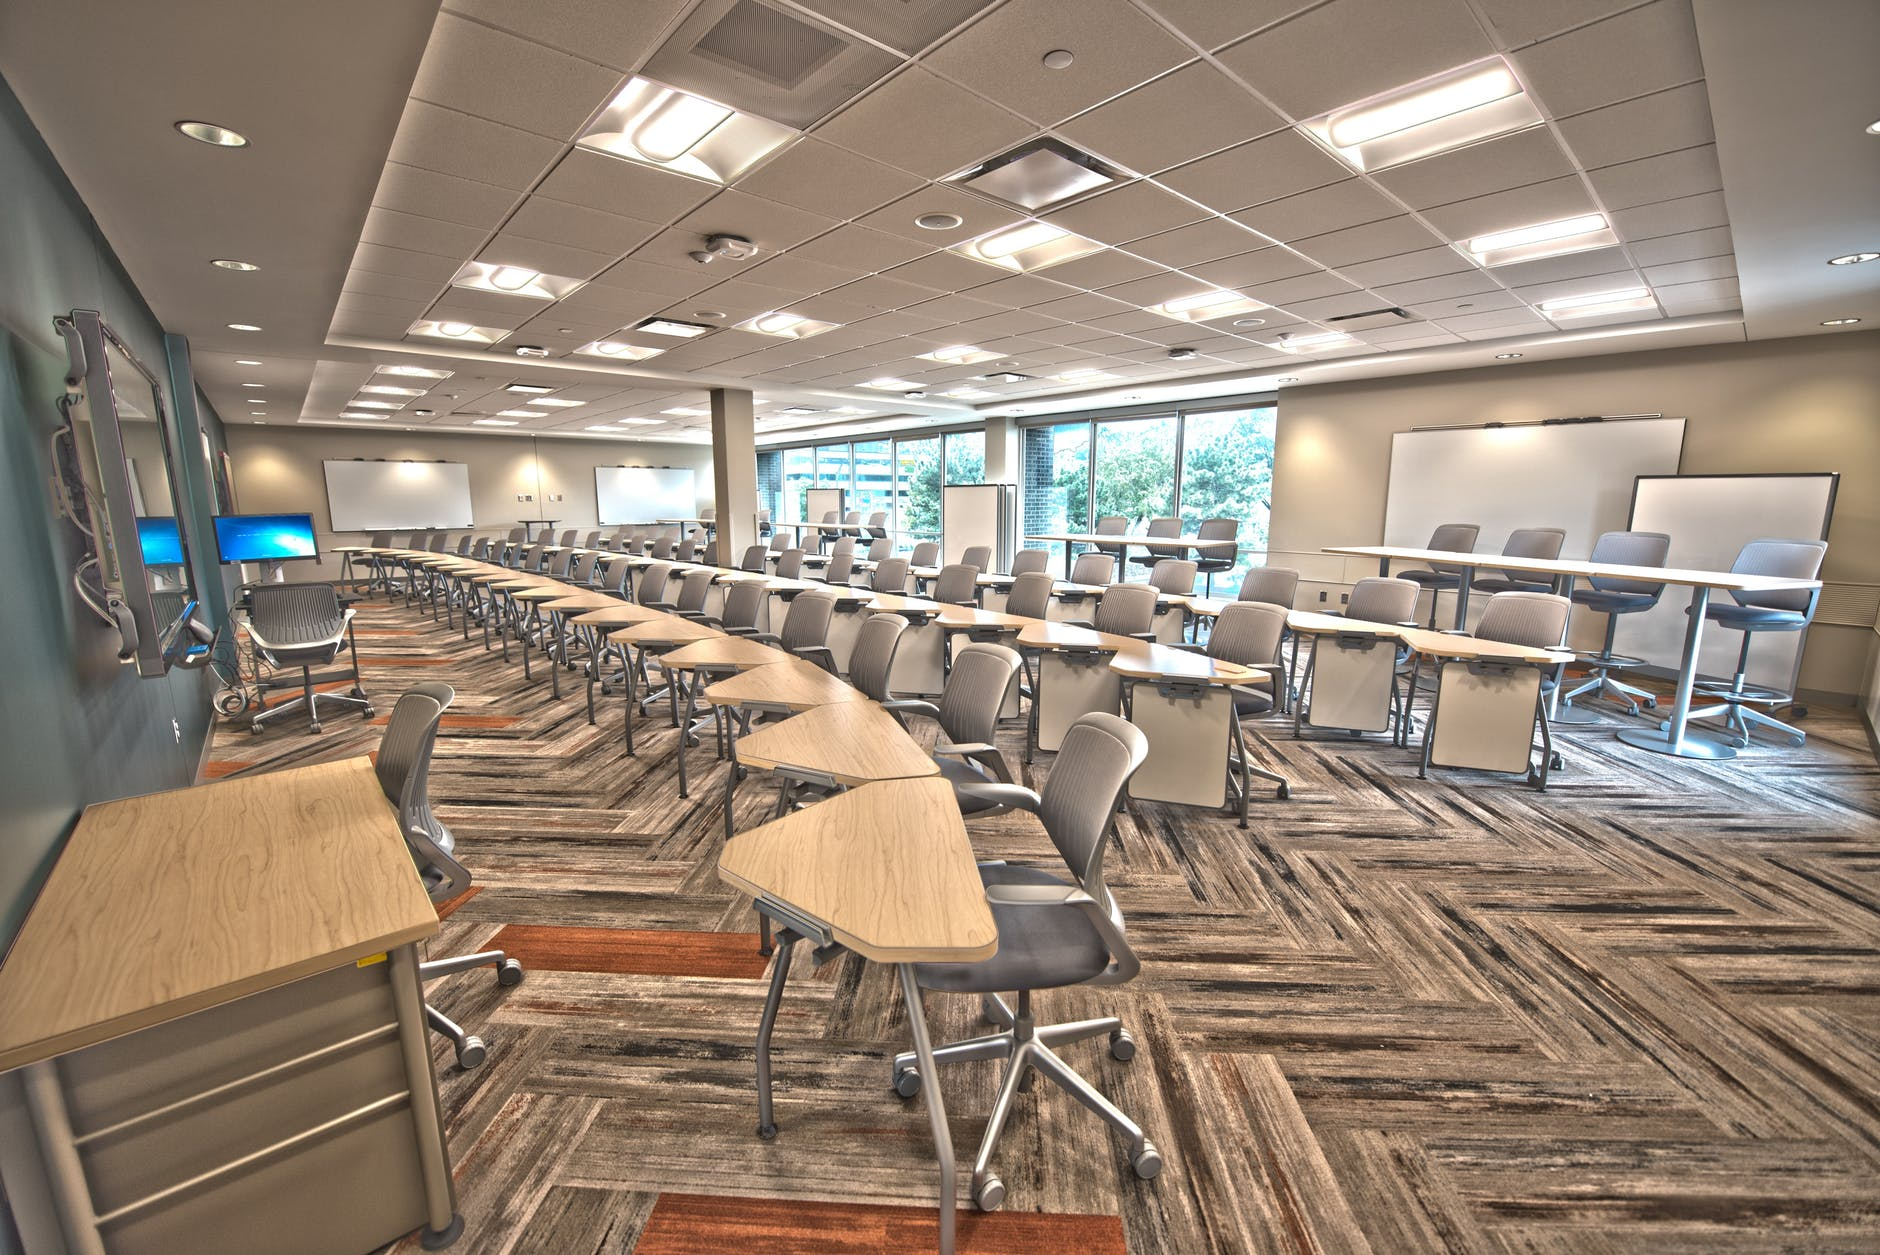 School-Cleaning-Services-Fort Lauderdale-miami-west-palm-florida